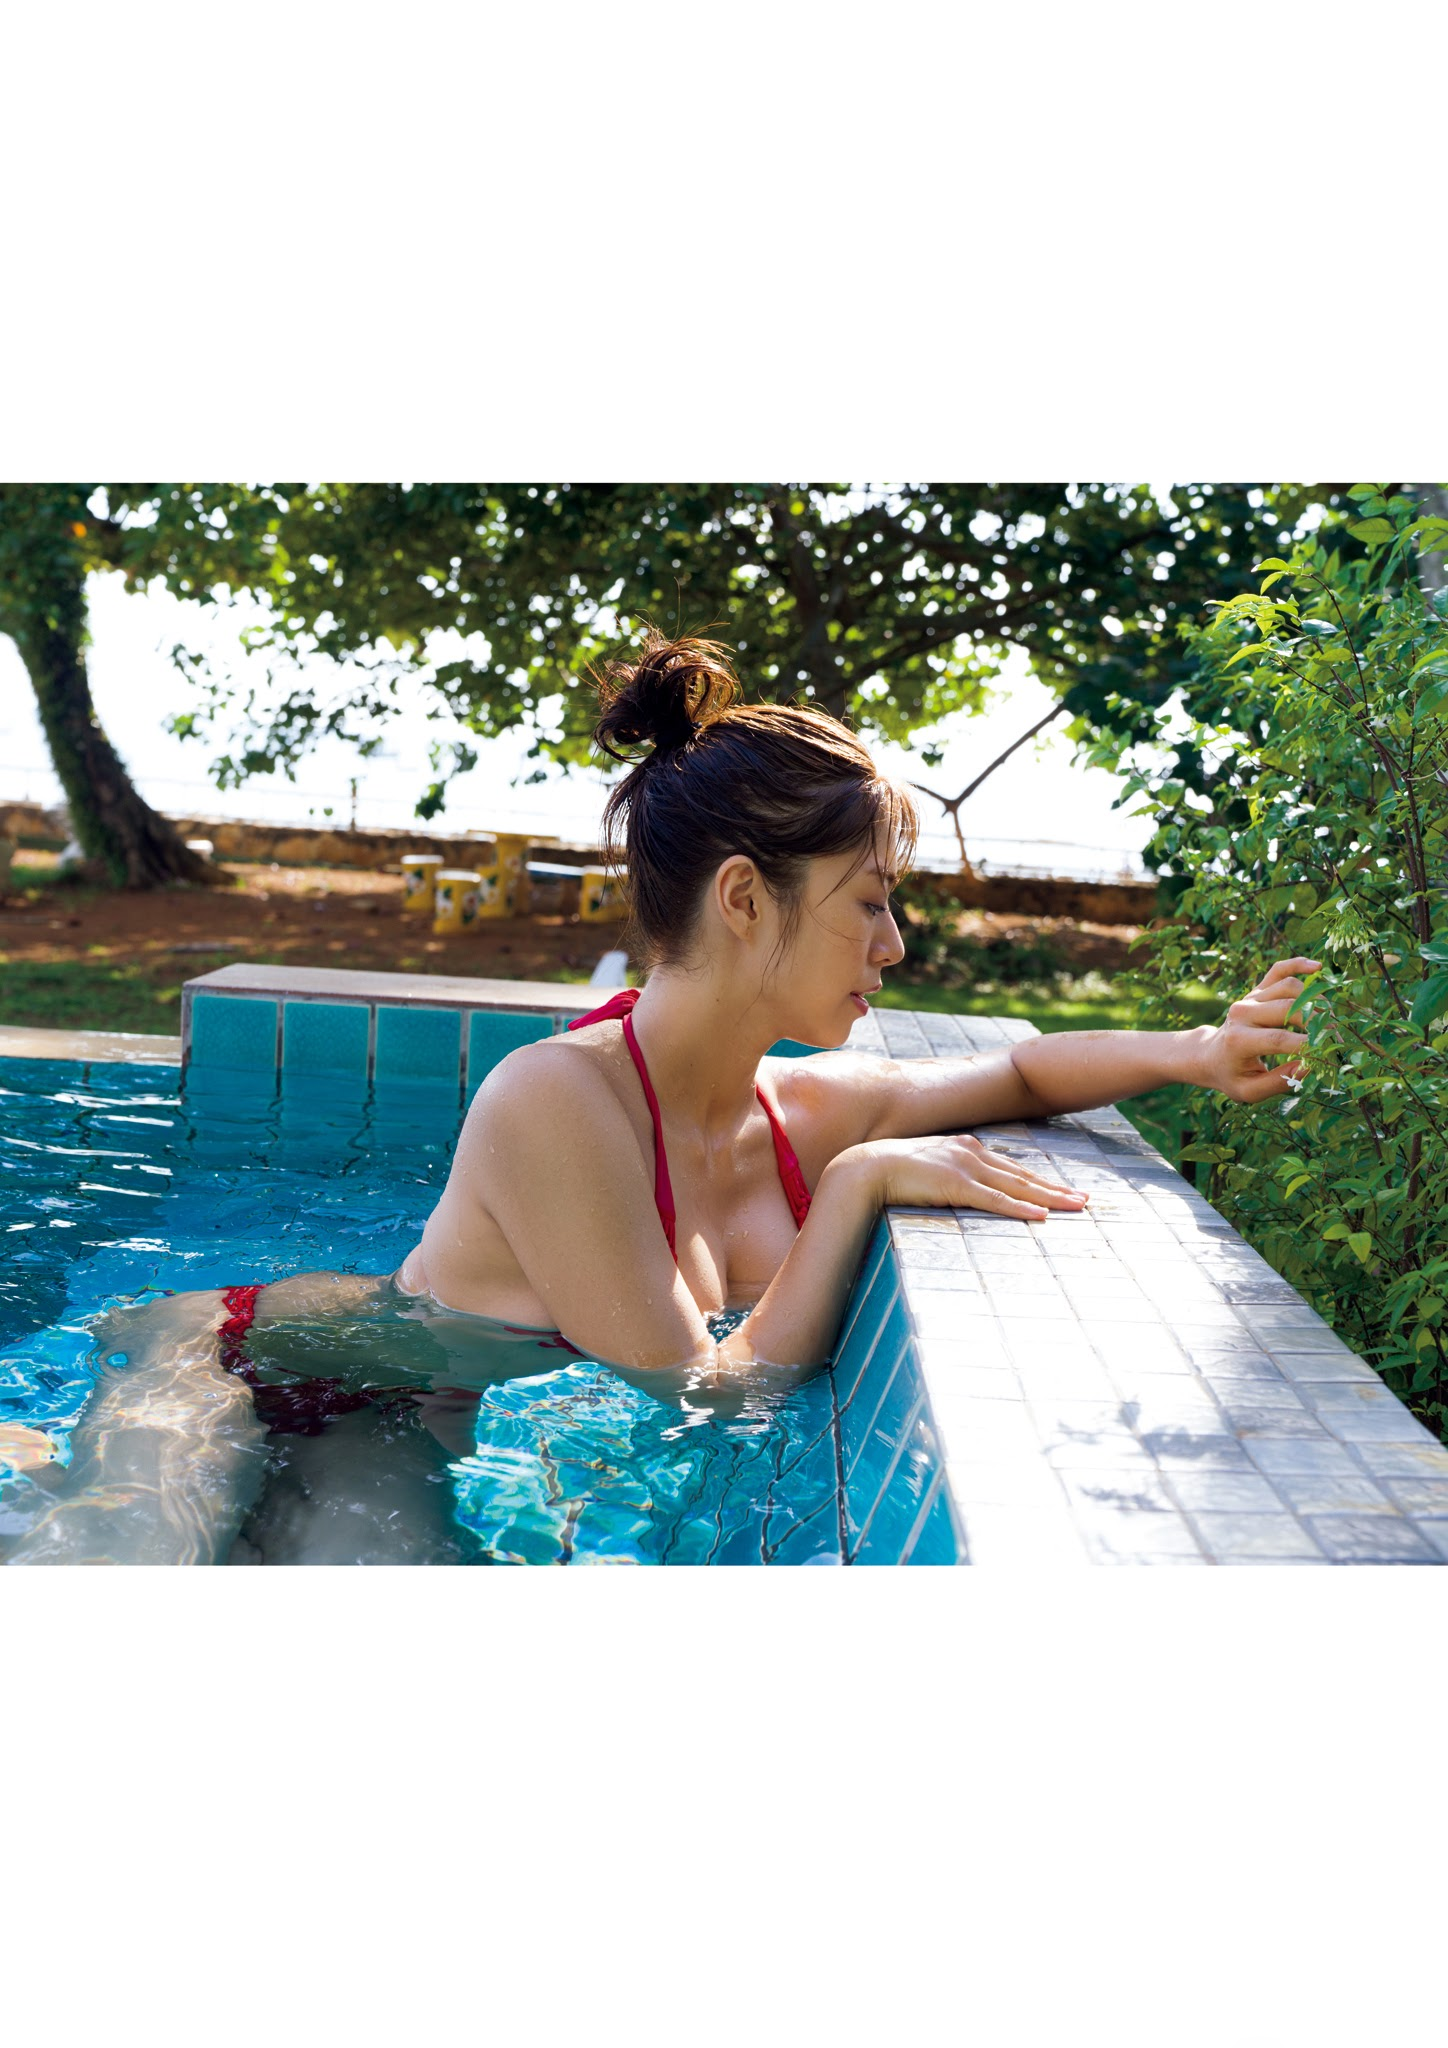 Super body of H cup Minami Wachi 2020 that exposes body and mind in tropical Thailand083